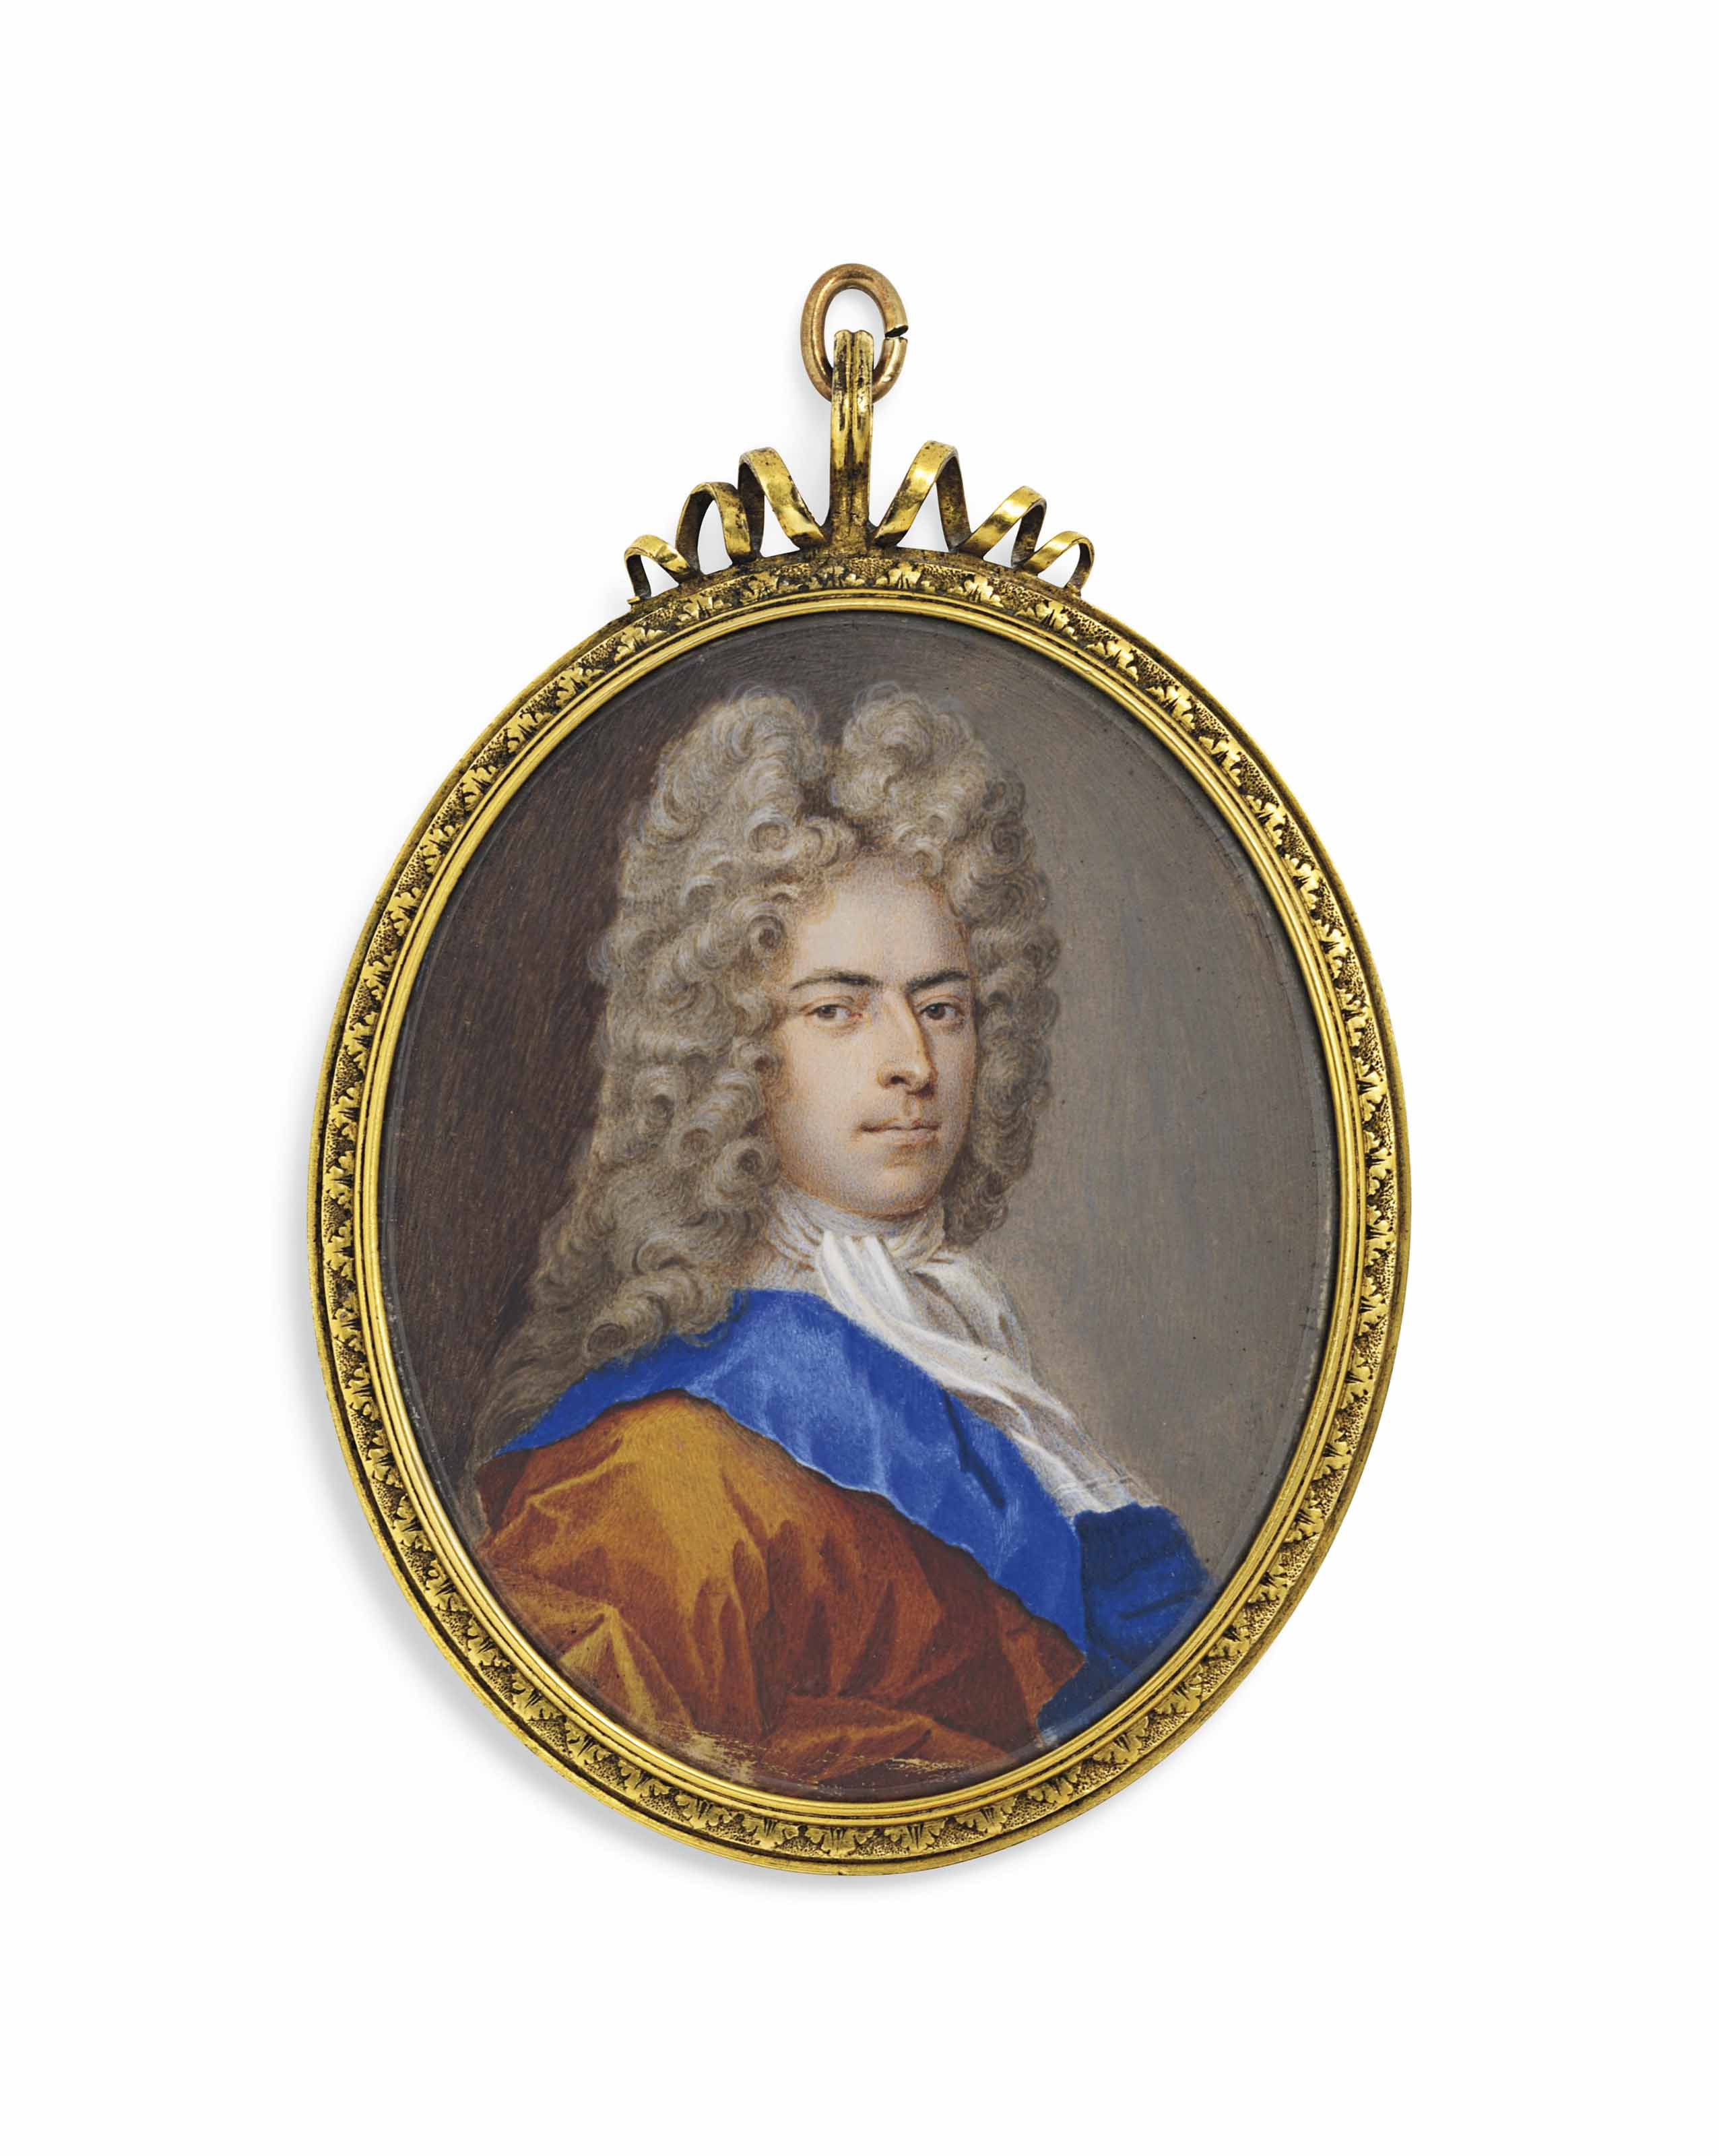 CHRISTIAN RICHTER (ANGLO-SWEDISH, 1678-1732)